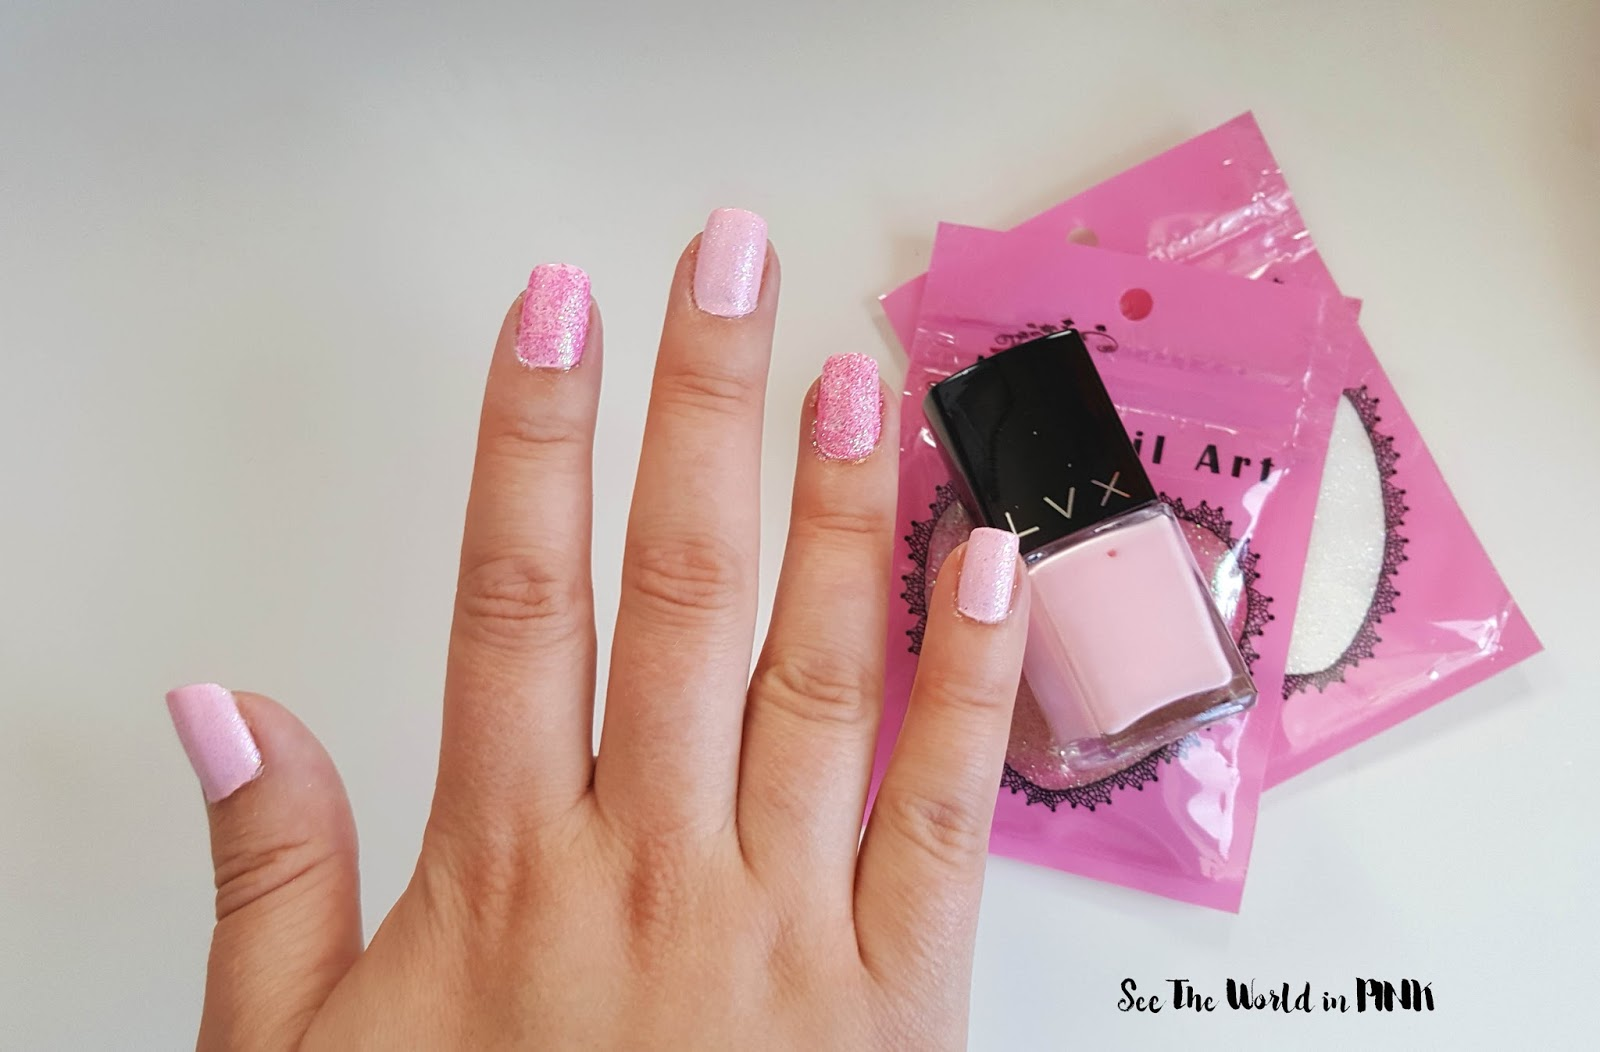 Manicure Monday - Mermaid Nail Powders!